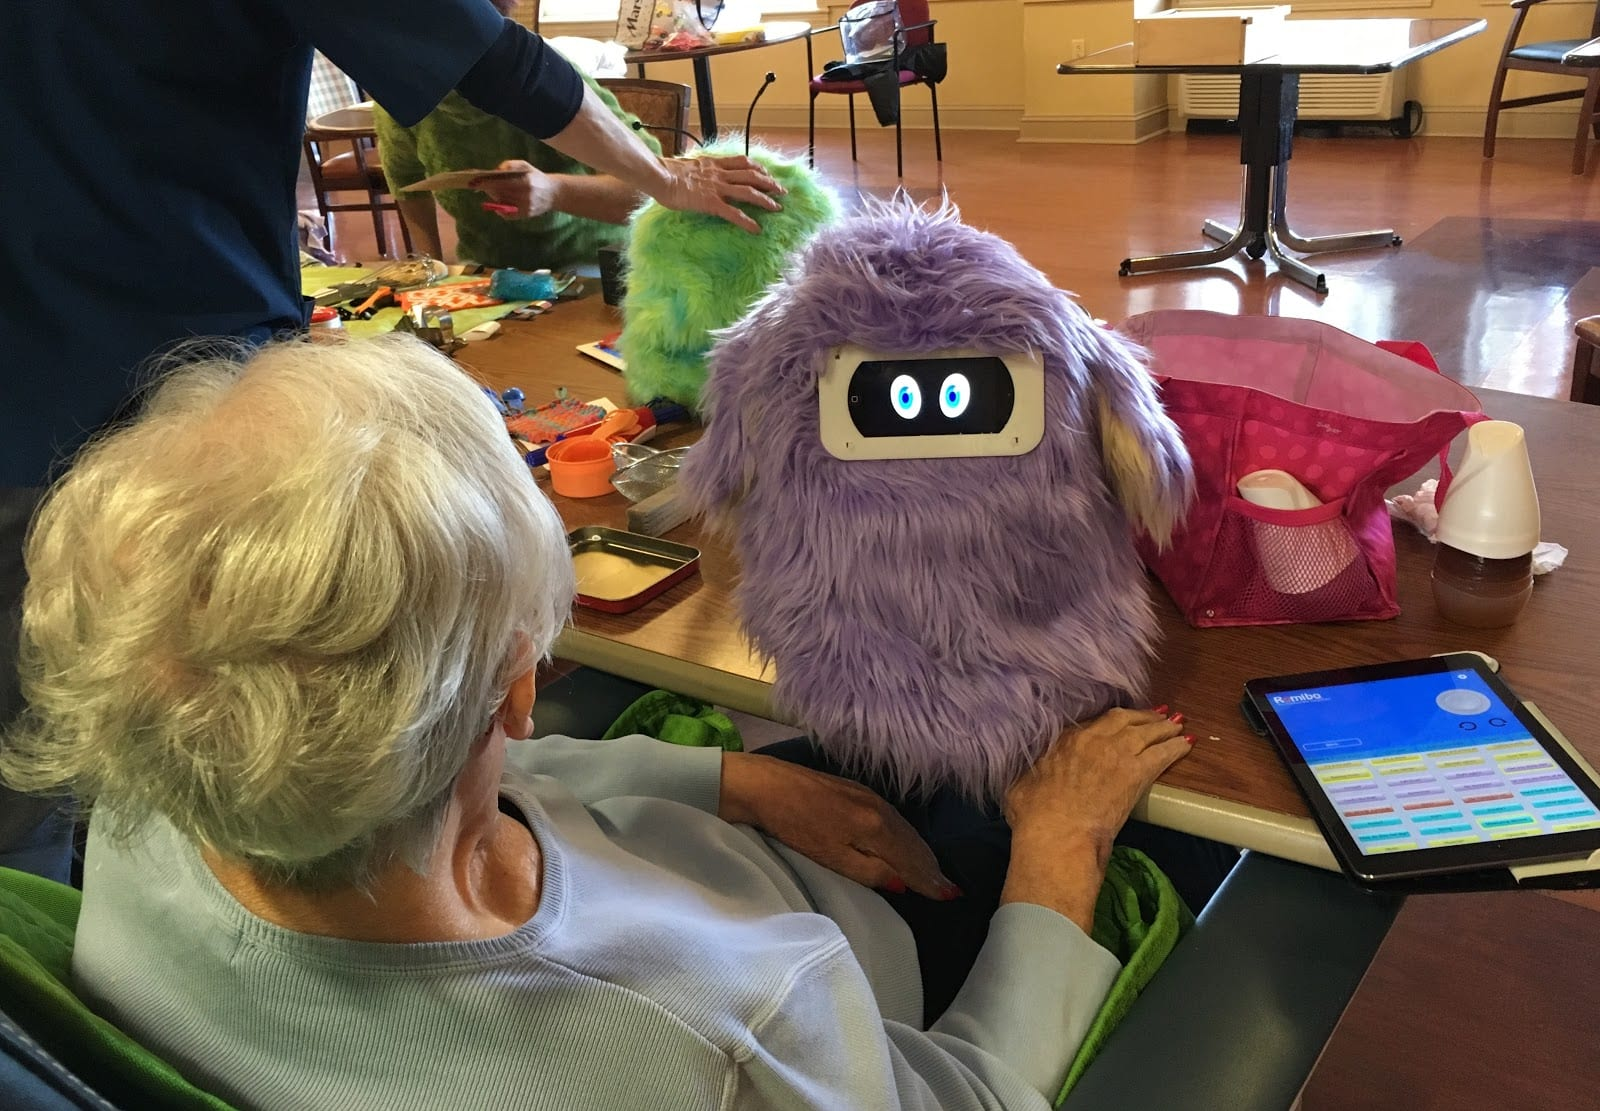 FAMbot interacting with elderly woman